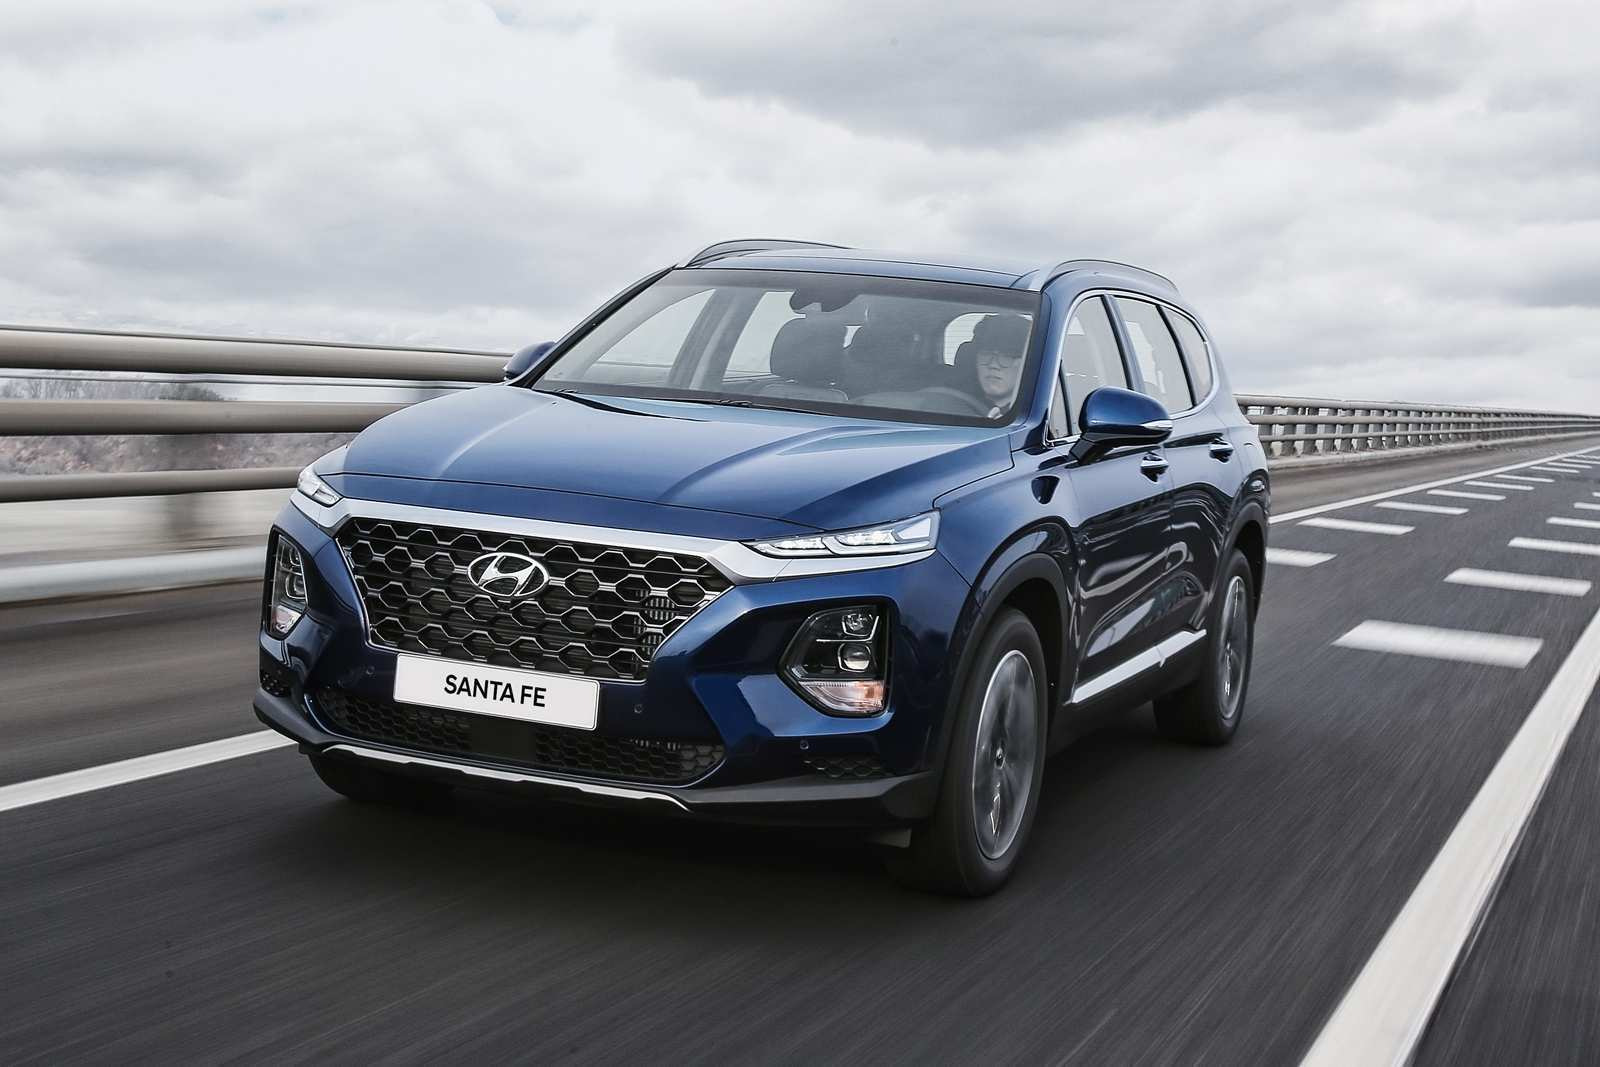 48 The 2019 Hyundai Sonata Hybrid Sport Price And Review